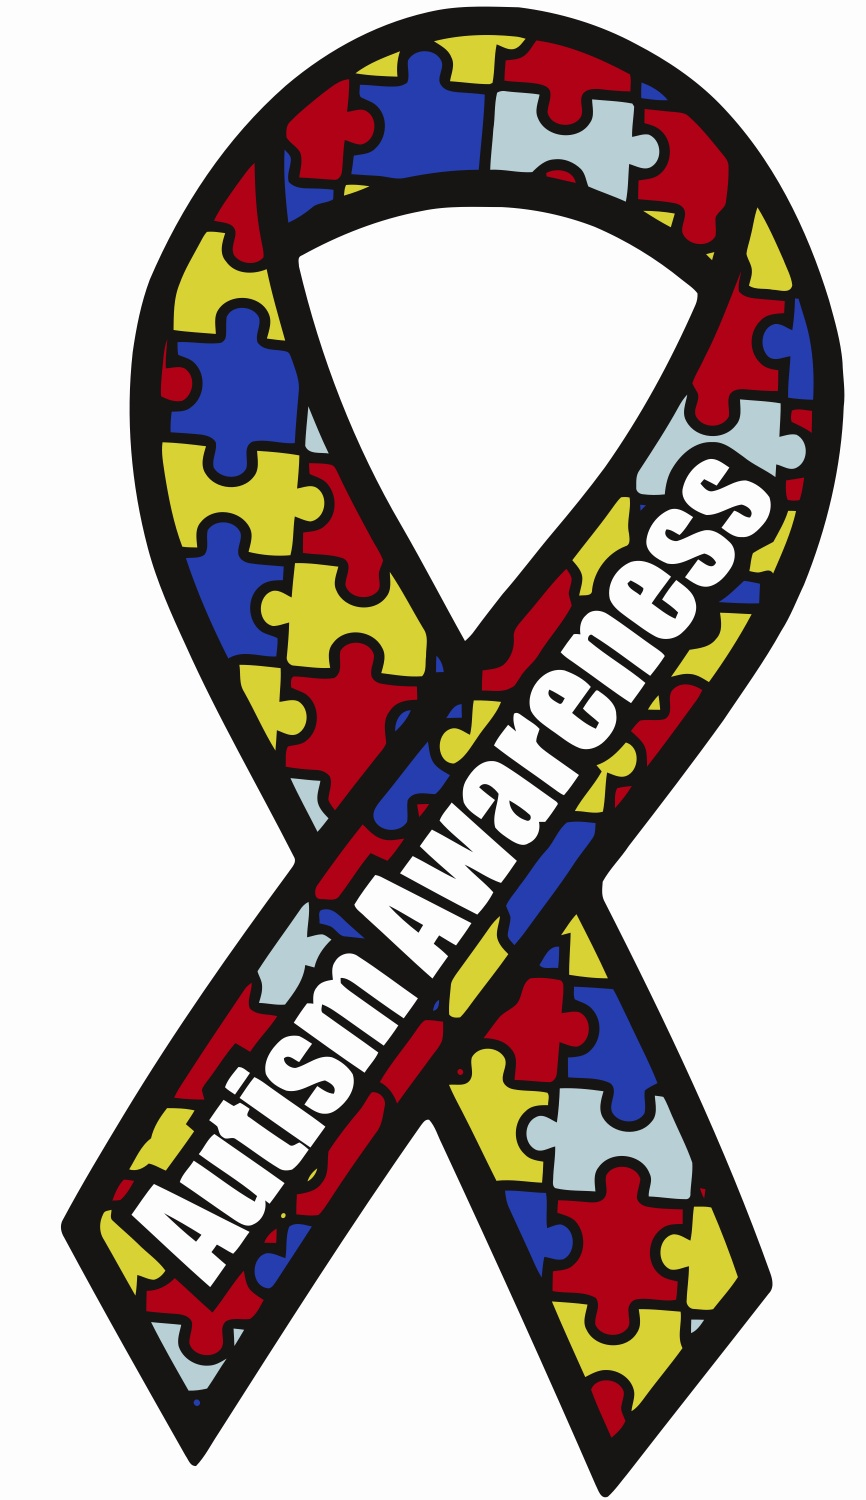 Vision And Autism Autism Awareness Month Mindsight